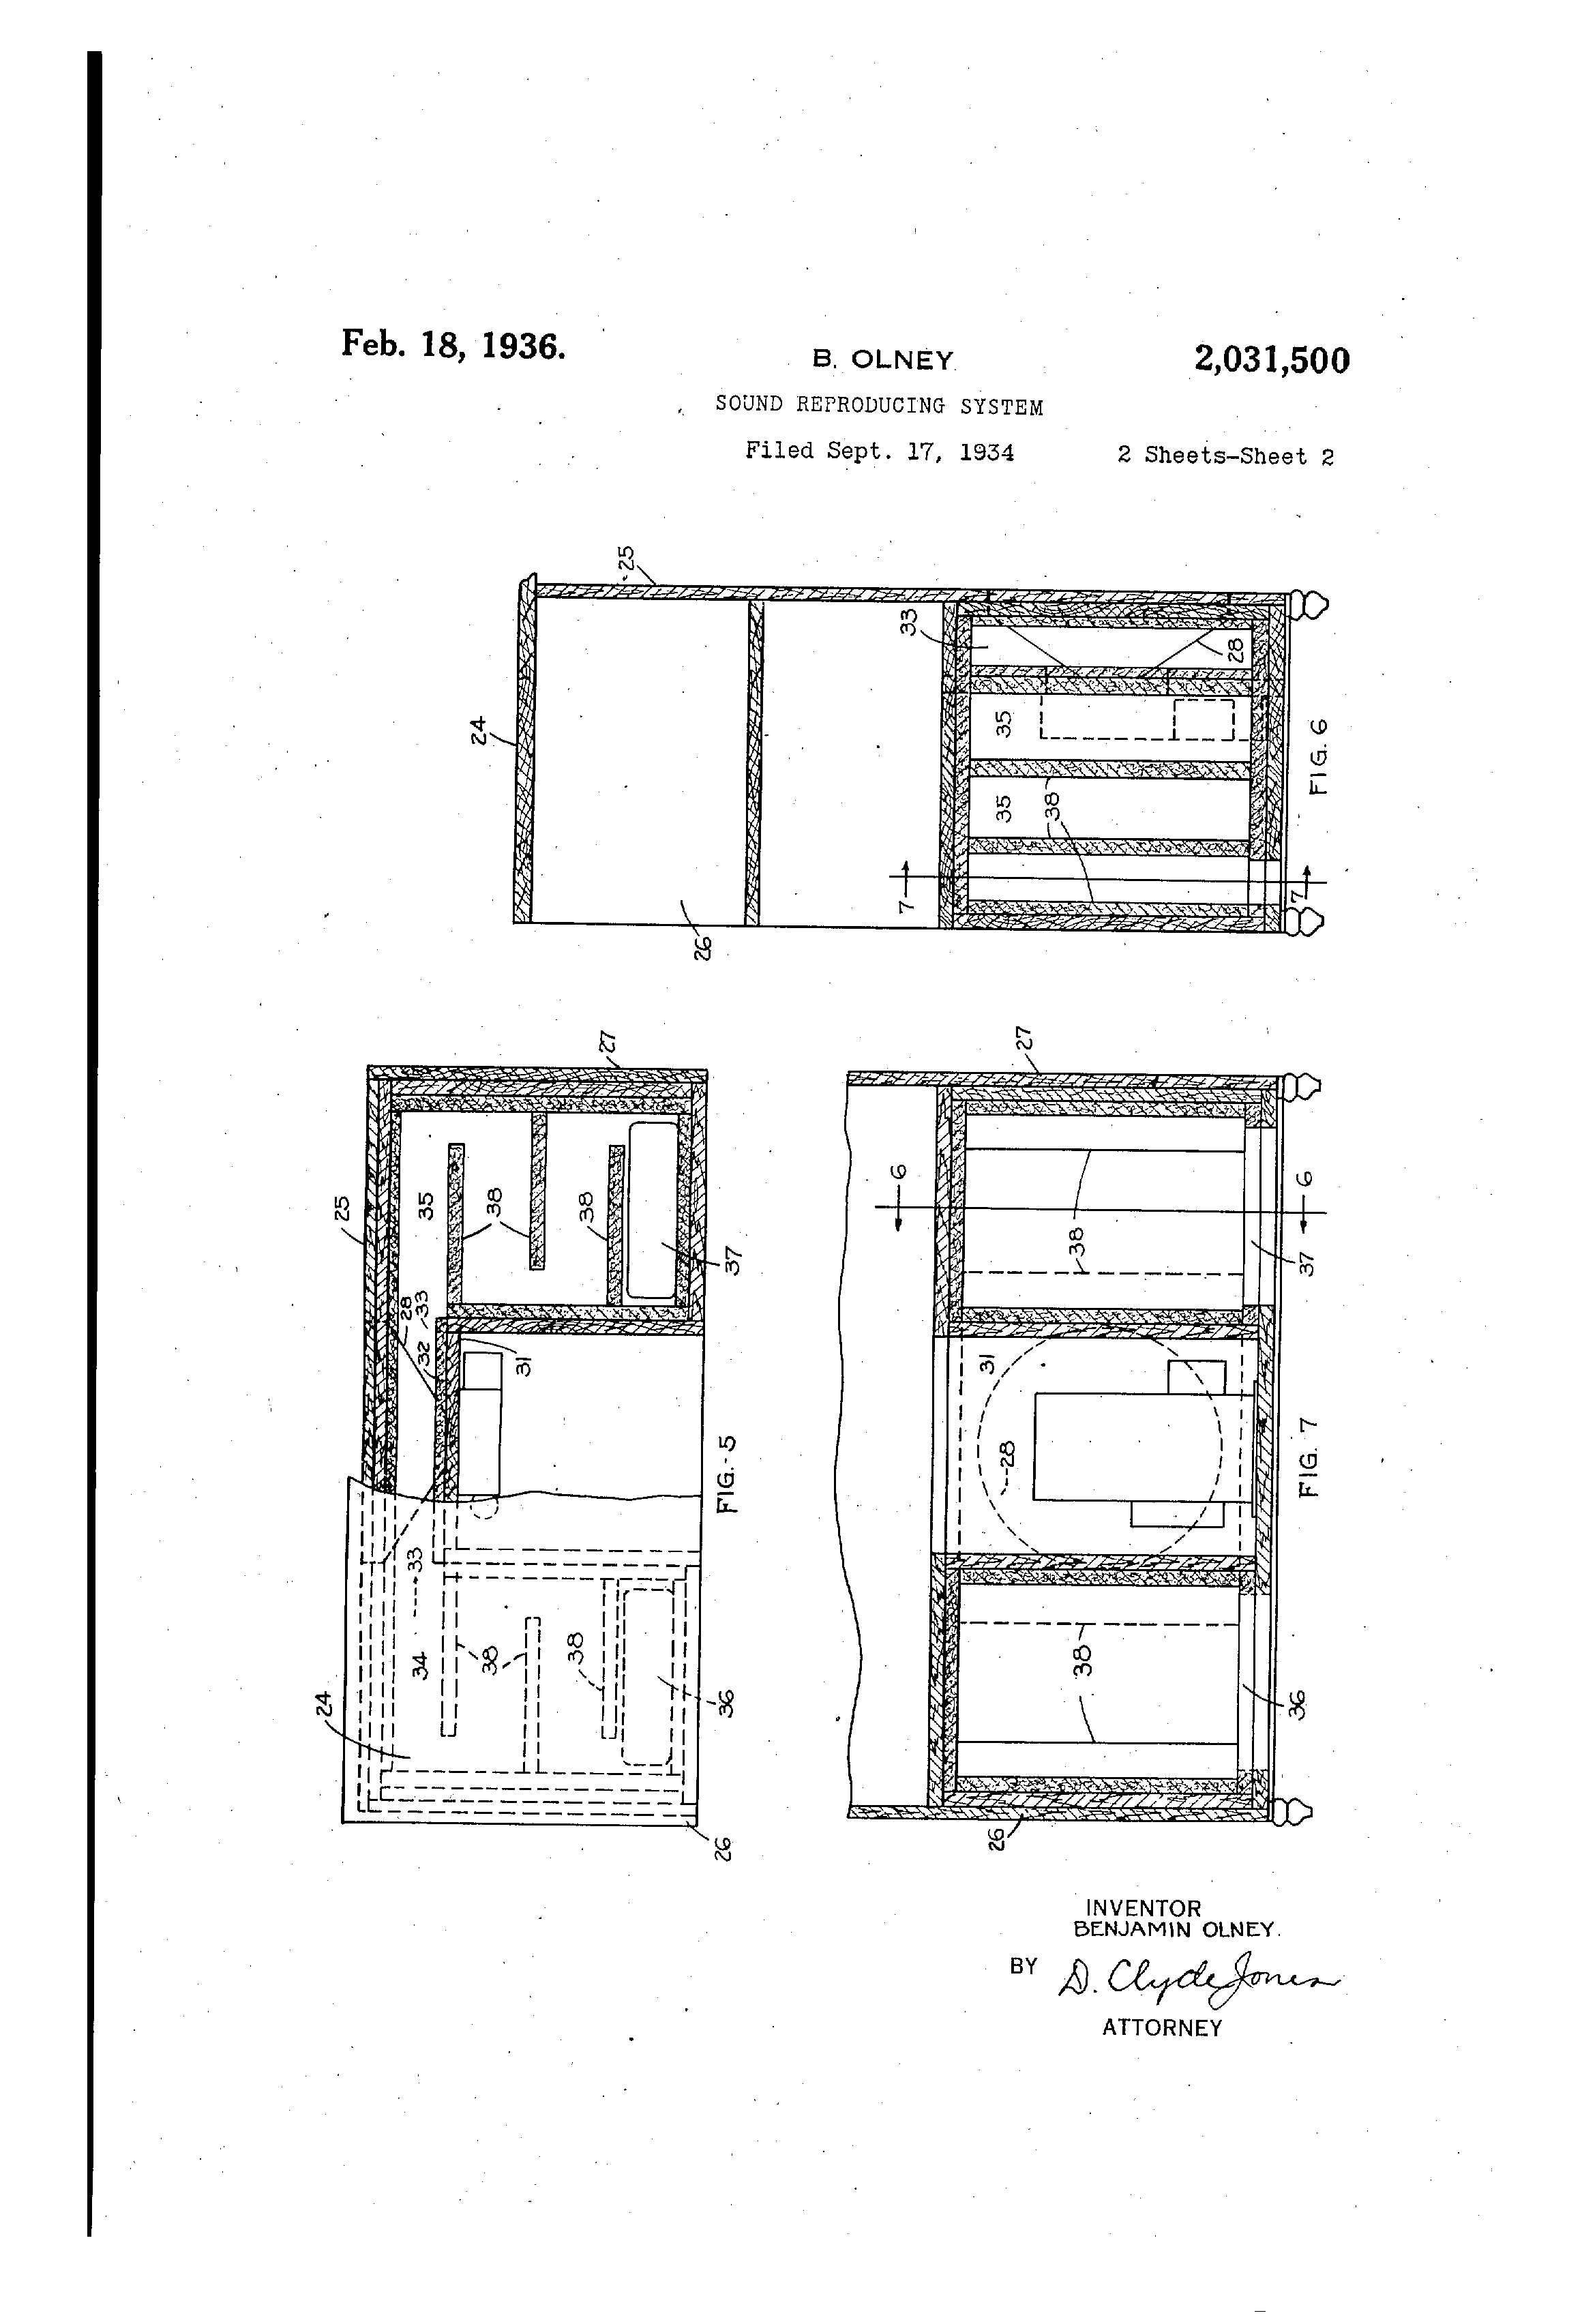 patent us2031500 - sound reproducing system